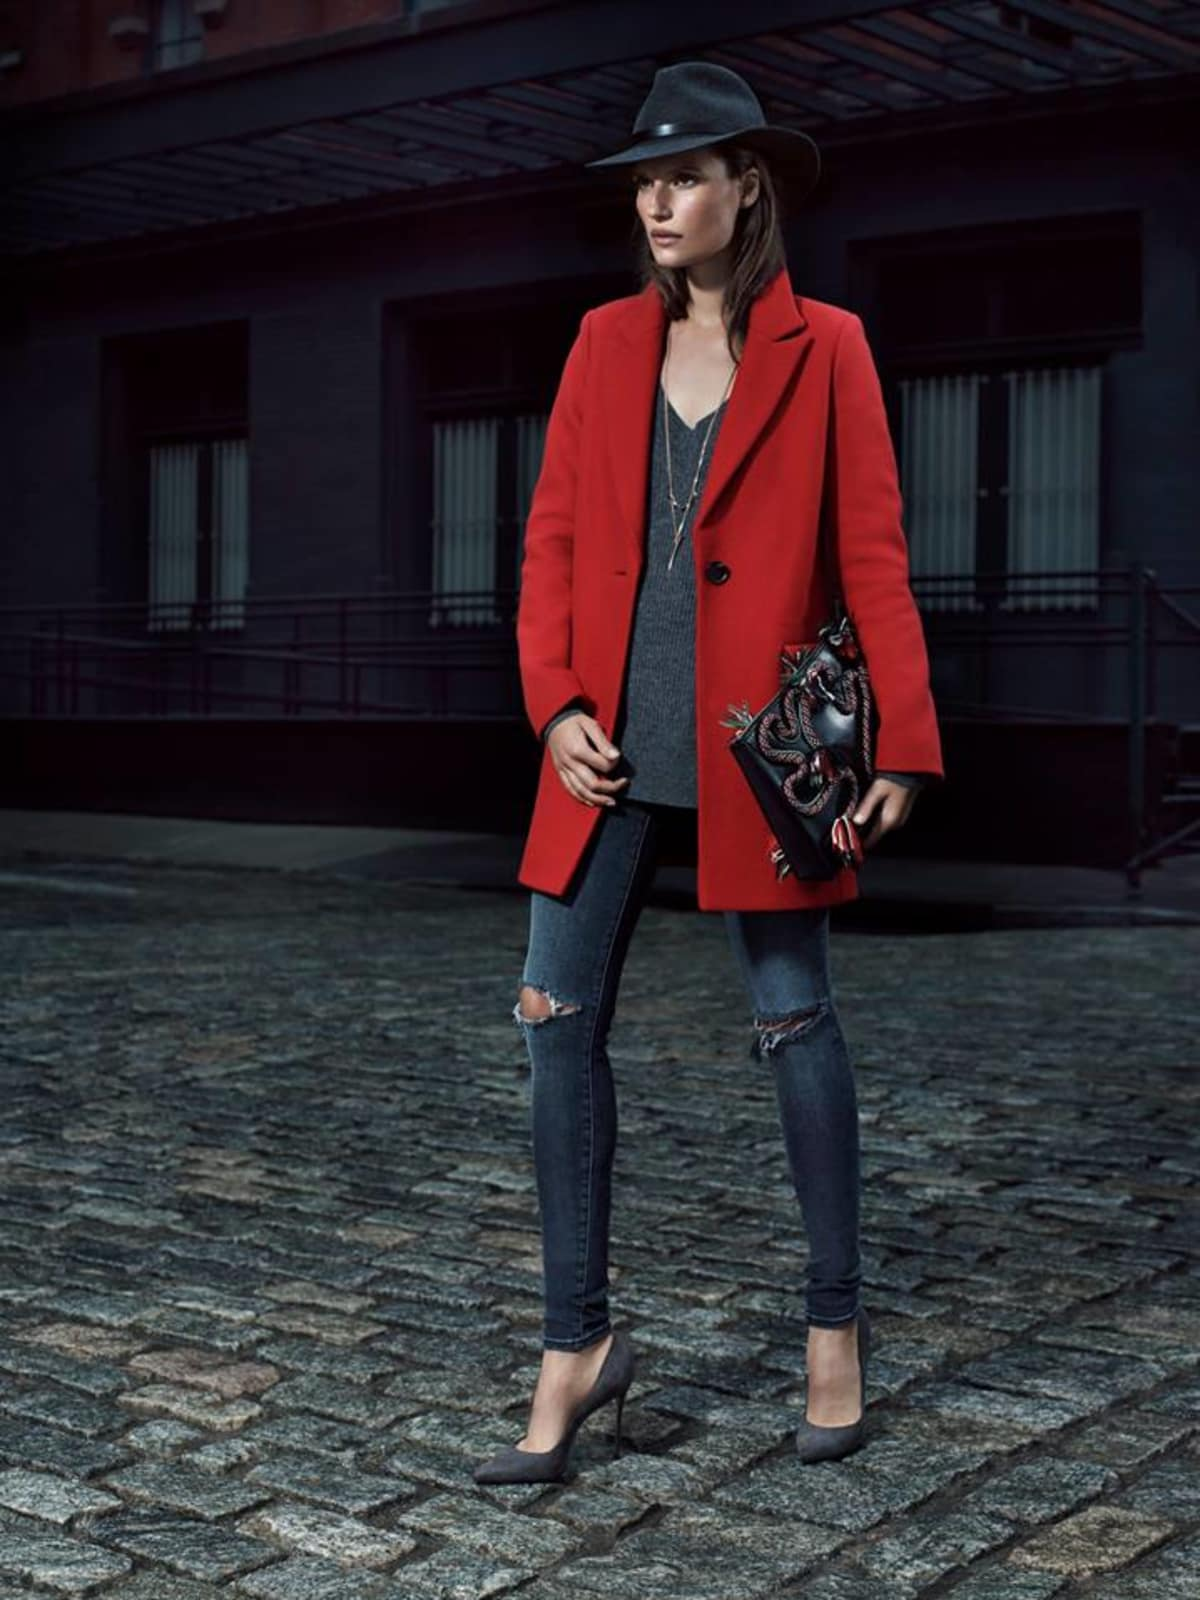 Fall 2014 look from Intermix